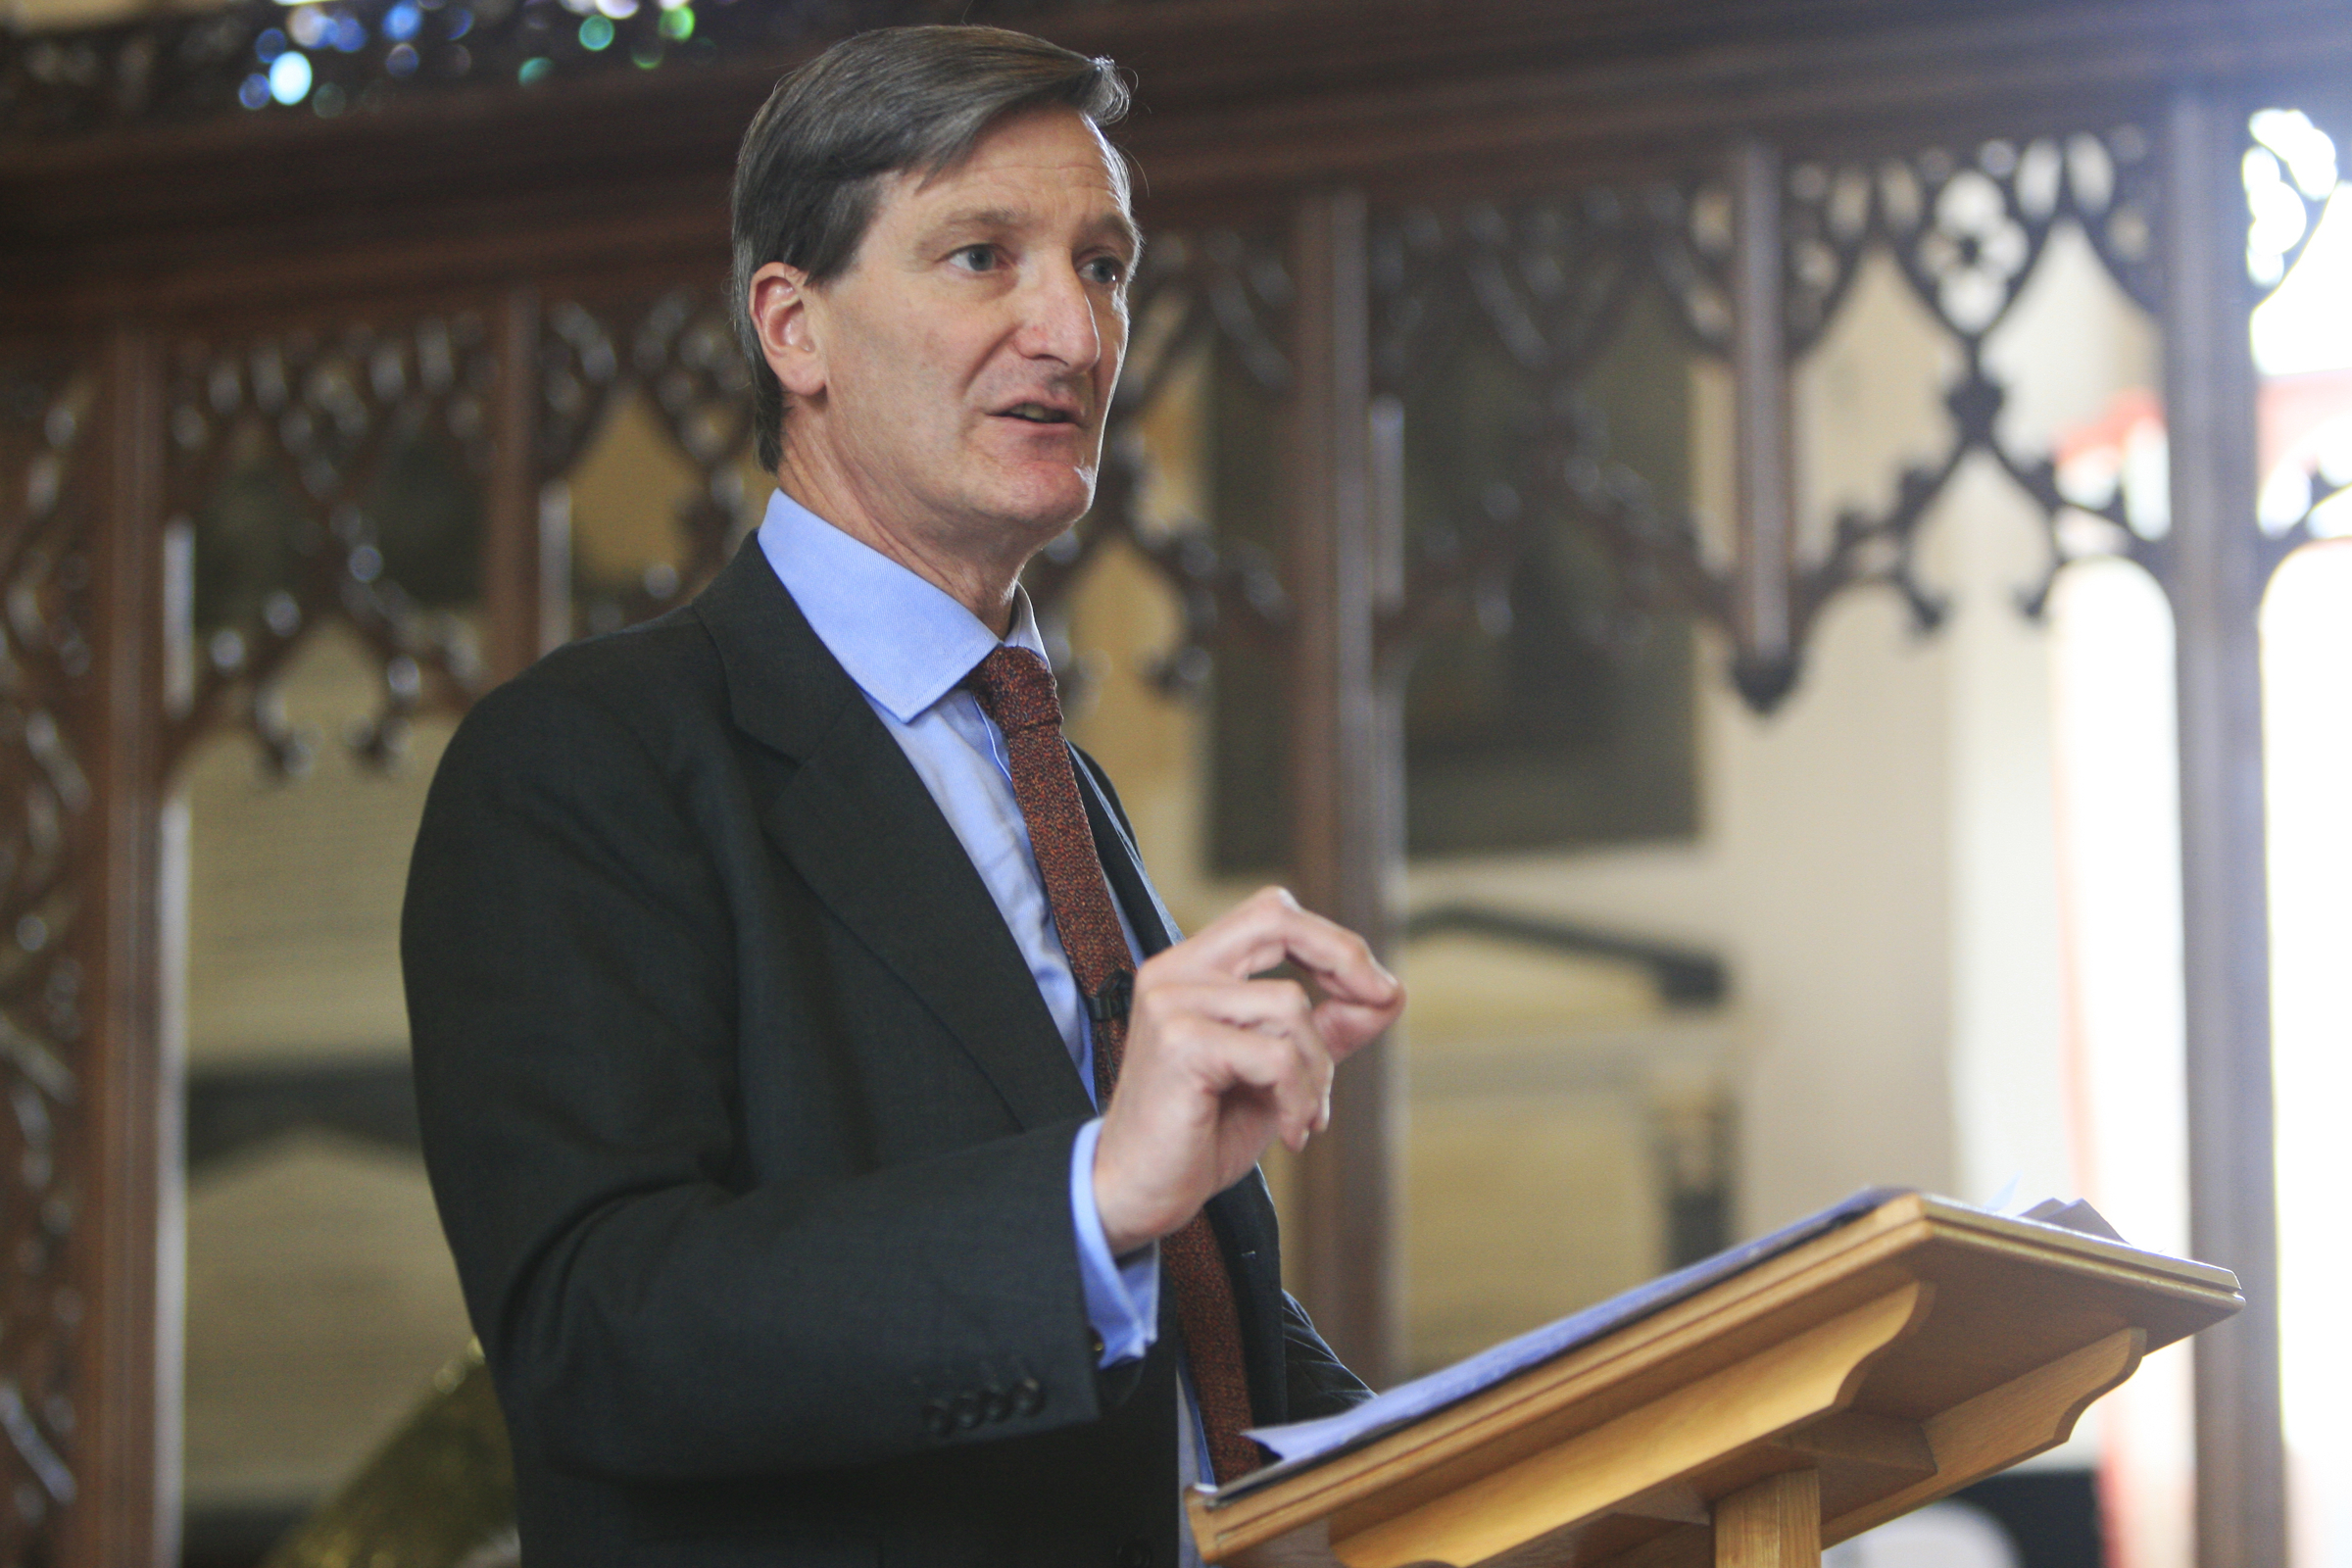 Dominic Grieve: 'Time to reflect upon momentous war centenary'